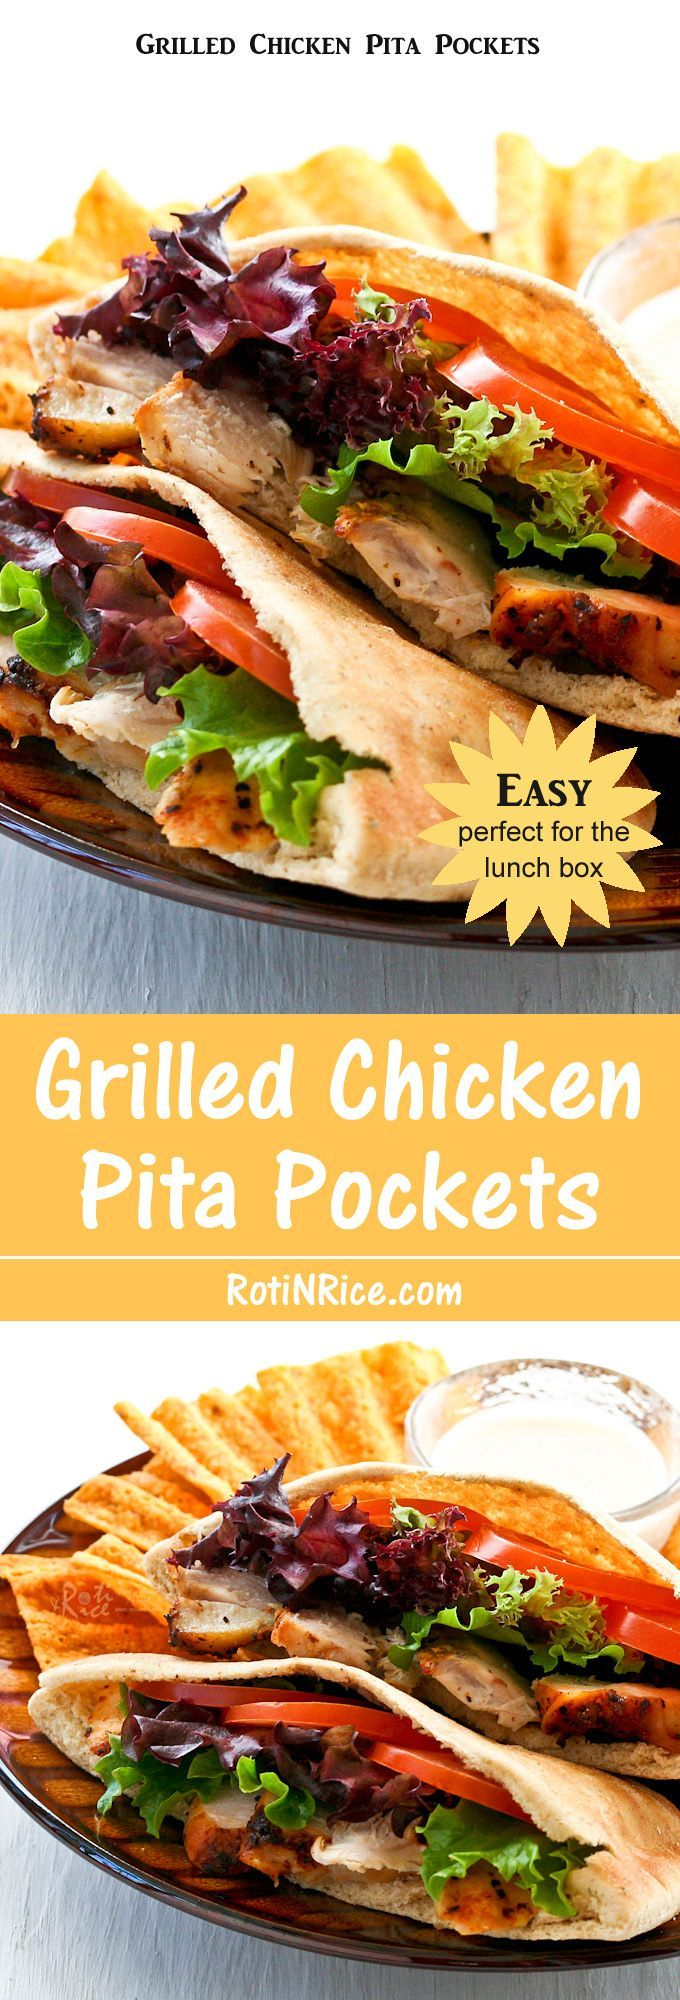 A quick and easy to assemble Grilled Chicken Pita Pockets using store bought grilled or rotisserie chicken. Perfect for the lunch box or tailgate party. | RotiNRice.com